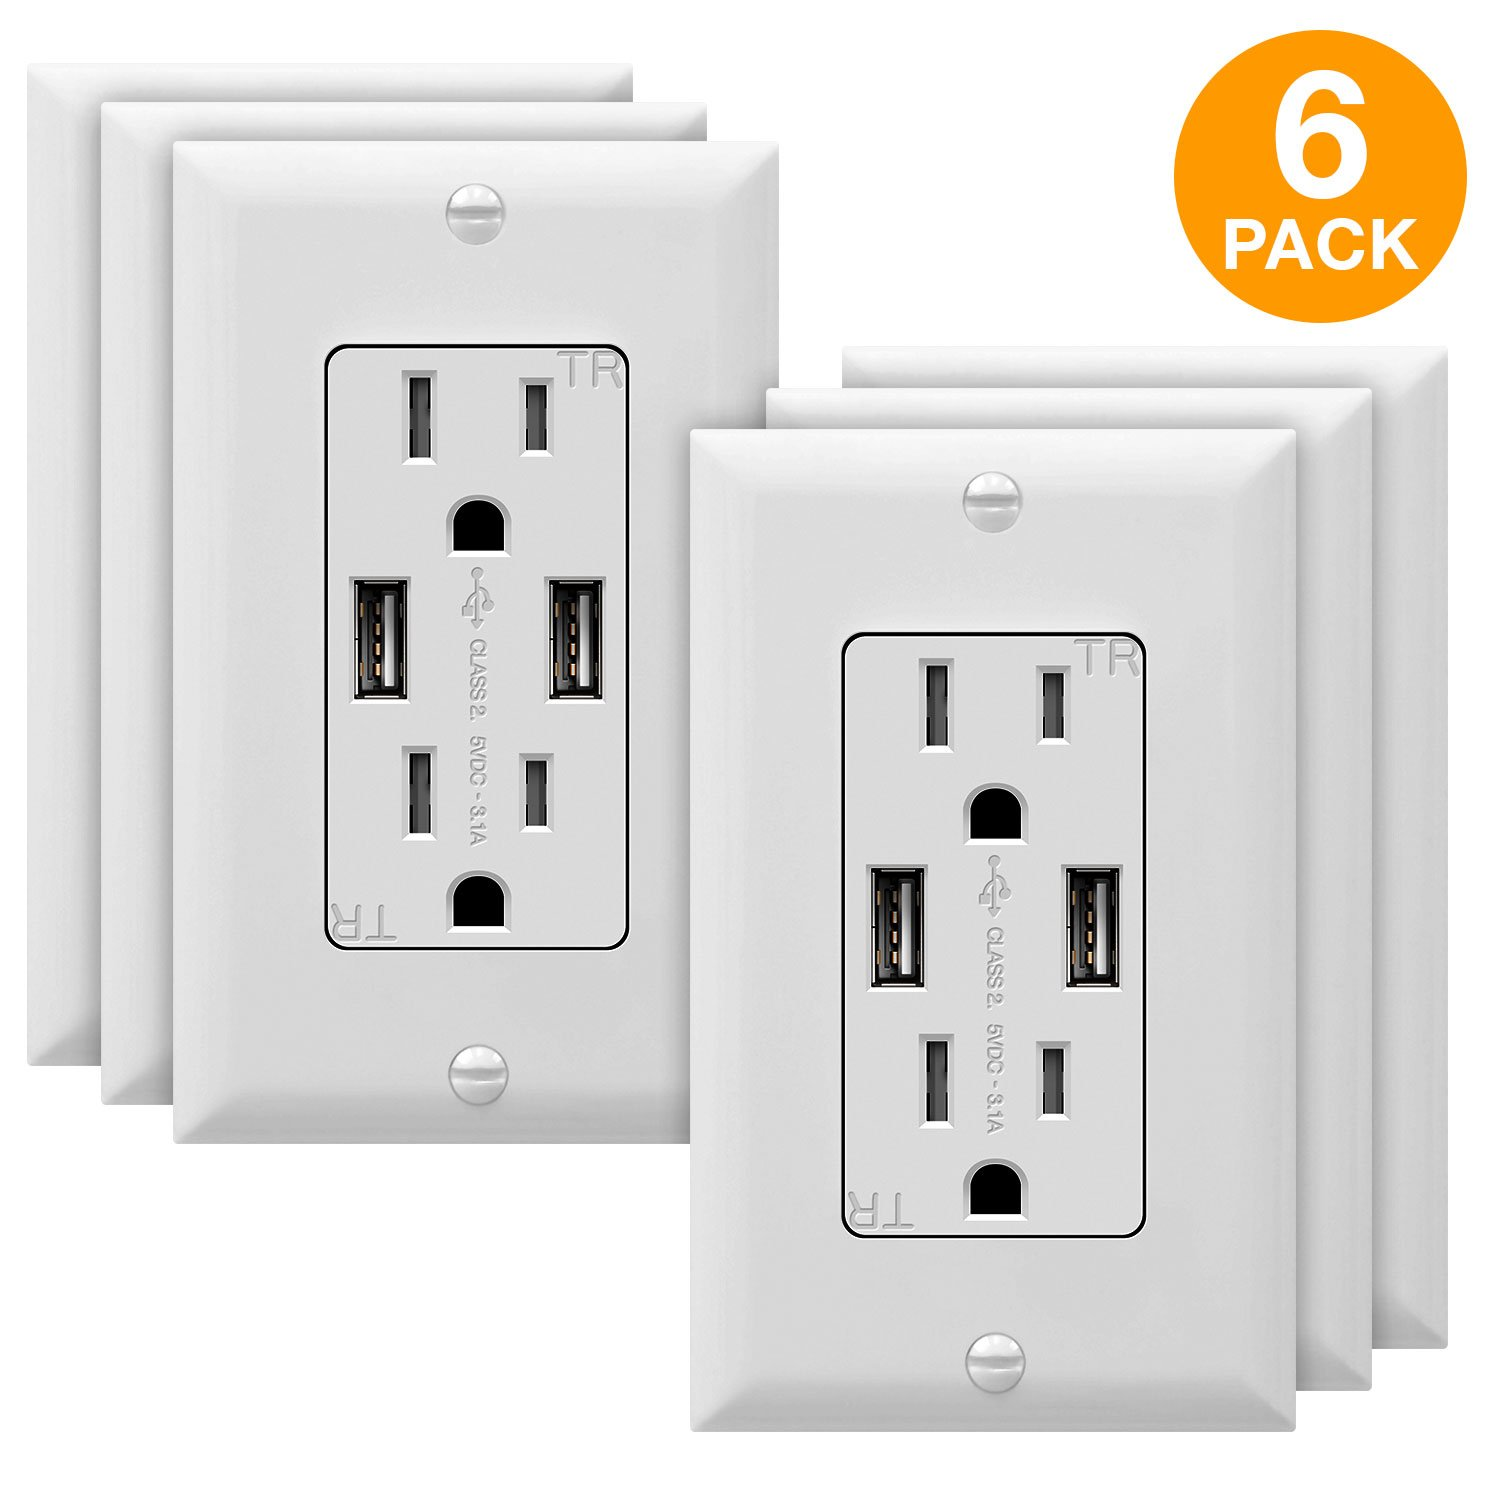 TOPGREENER 3.1A USB Wall Outlet Charger, 15A Tamper-Resistant Receptacles, Compatible with iPhone XS/MAX/XR/X/8, Samsung Galaxy S9/S8/S7, LG, HTC & other Smartphones, UL Listed, TU2153A, White 6 Pack by TOPGREENER